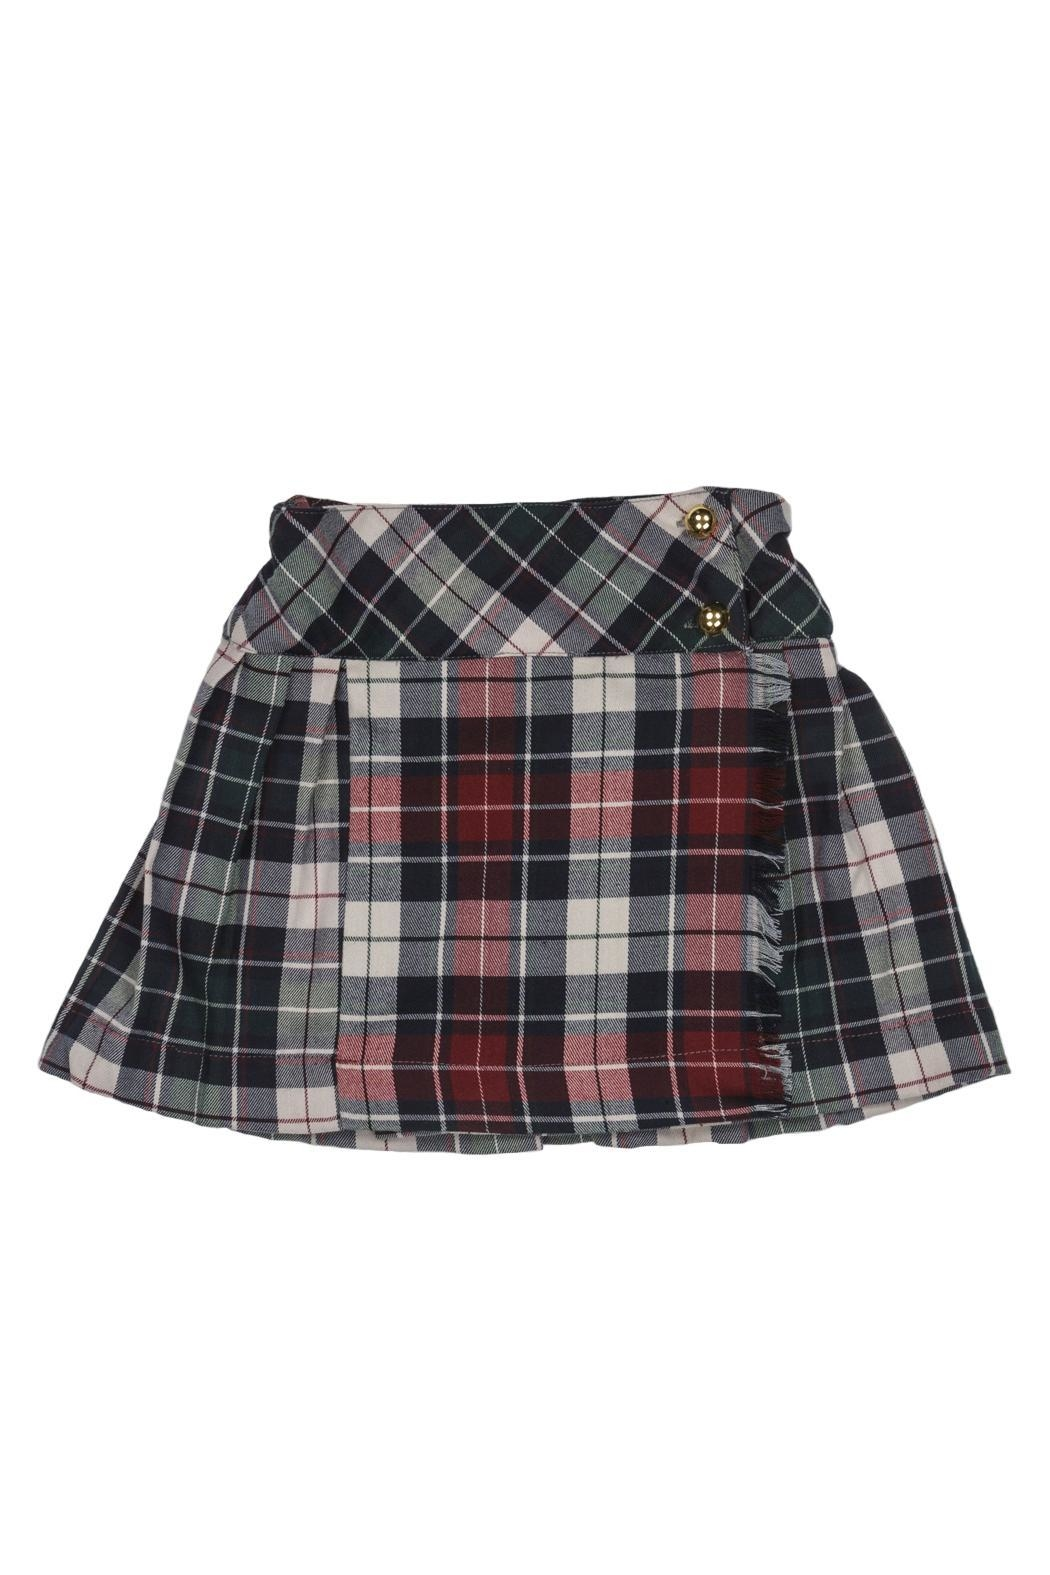 Malvi & Co. Green Bordeaux Kilt. - Front Cropped Image